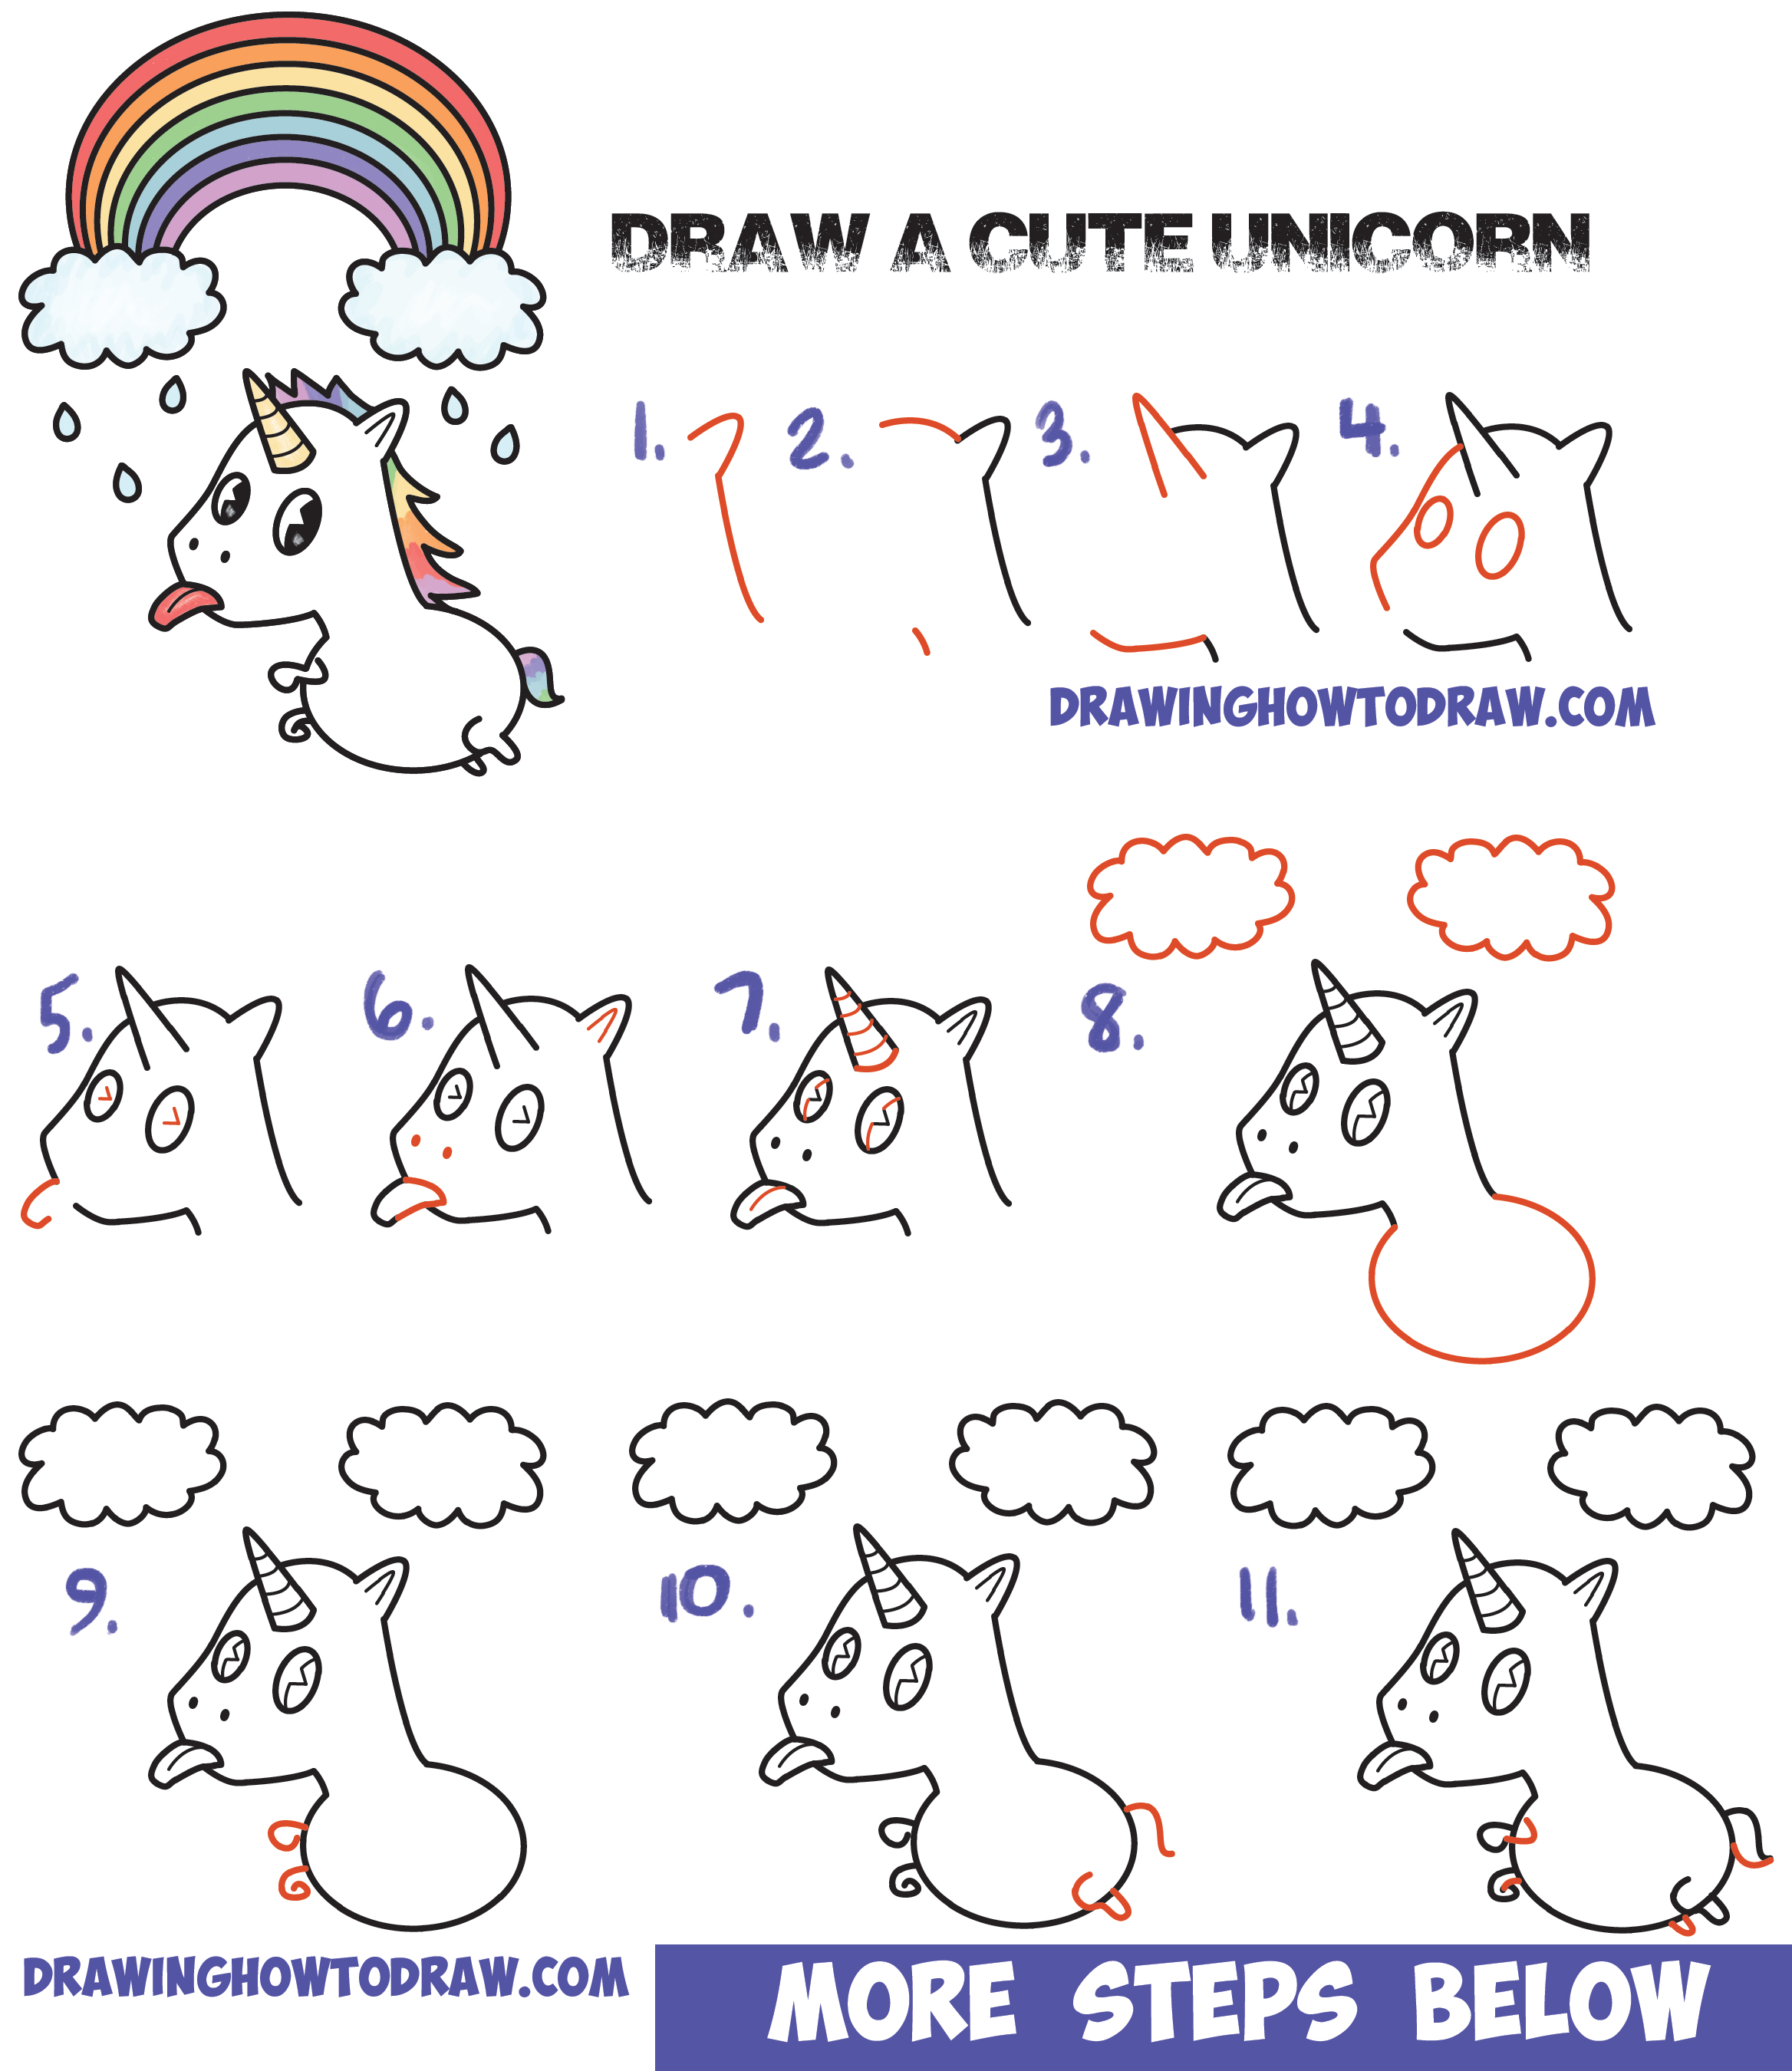 How To Draw A Cute Kawaii Unicorn With Tongue Out Under Rainbow Easy Step  By Step